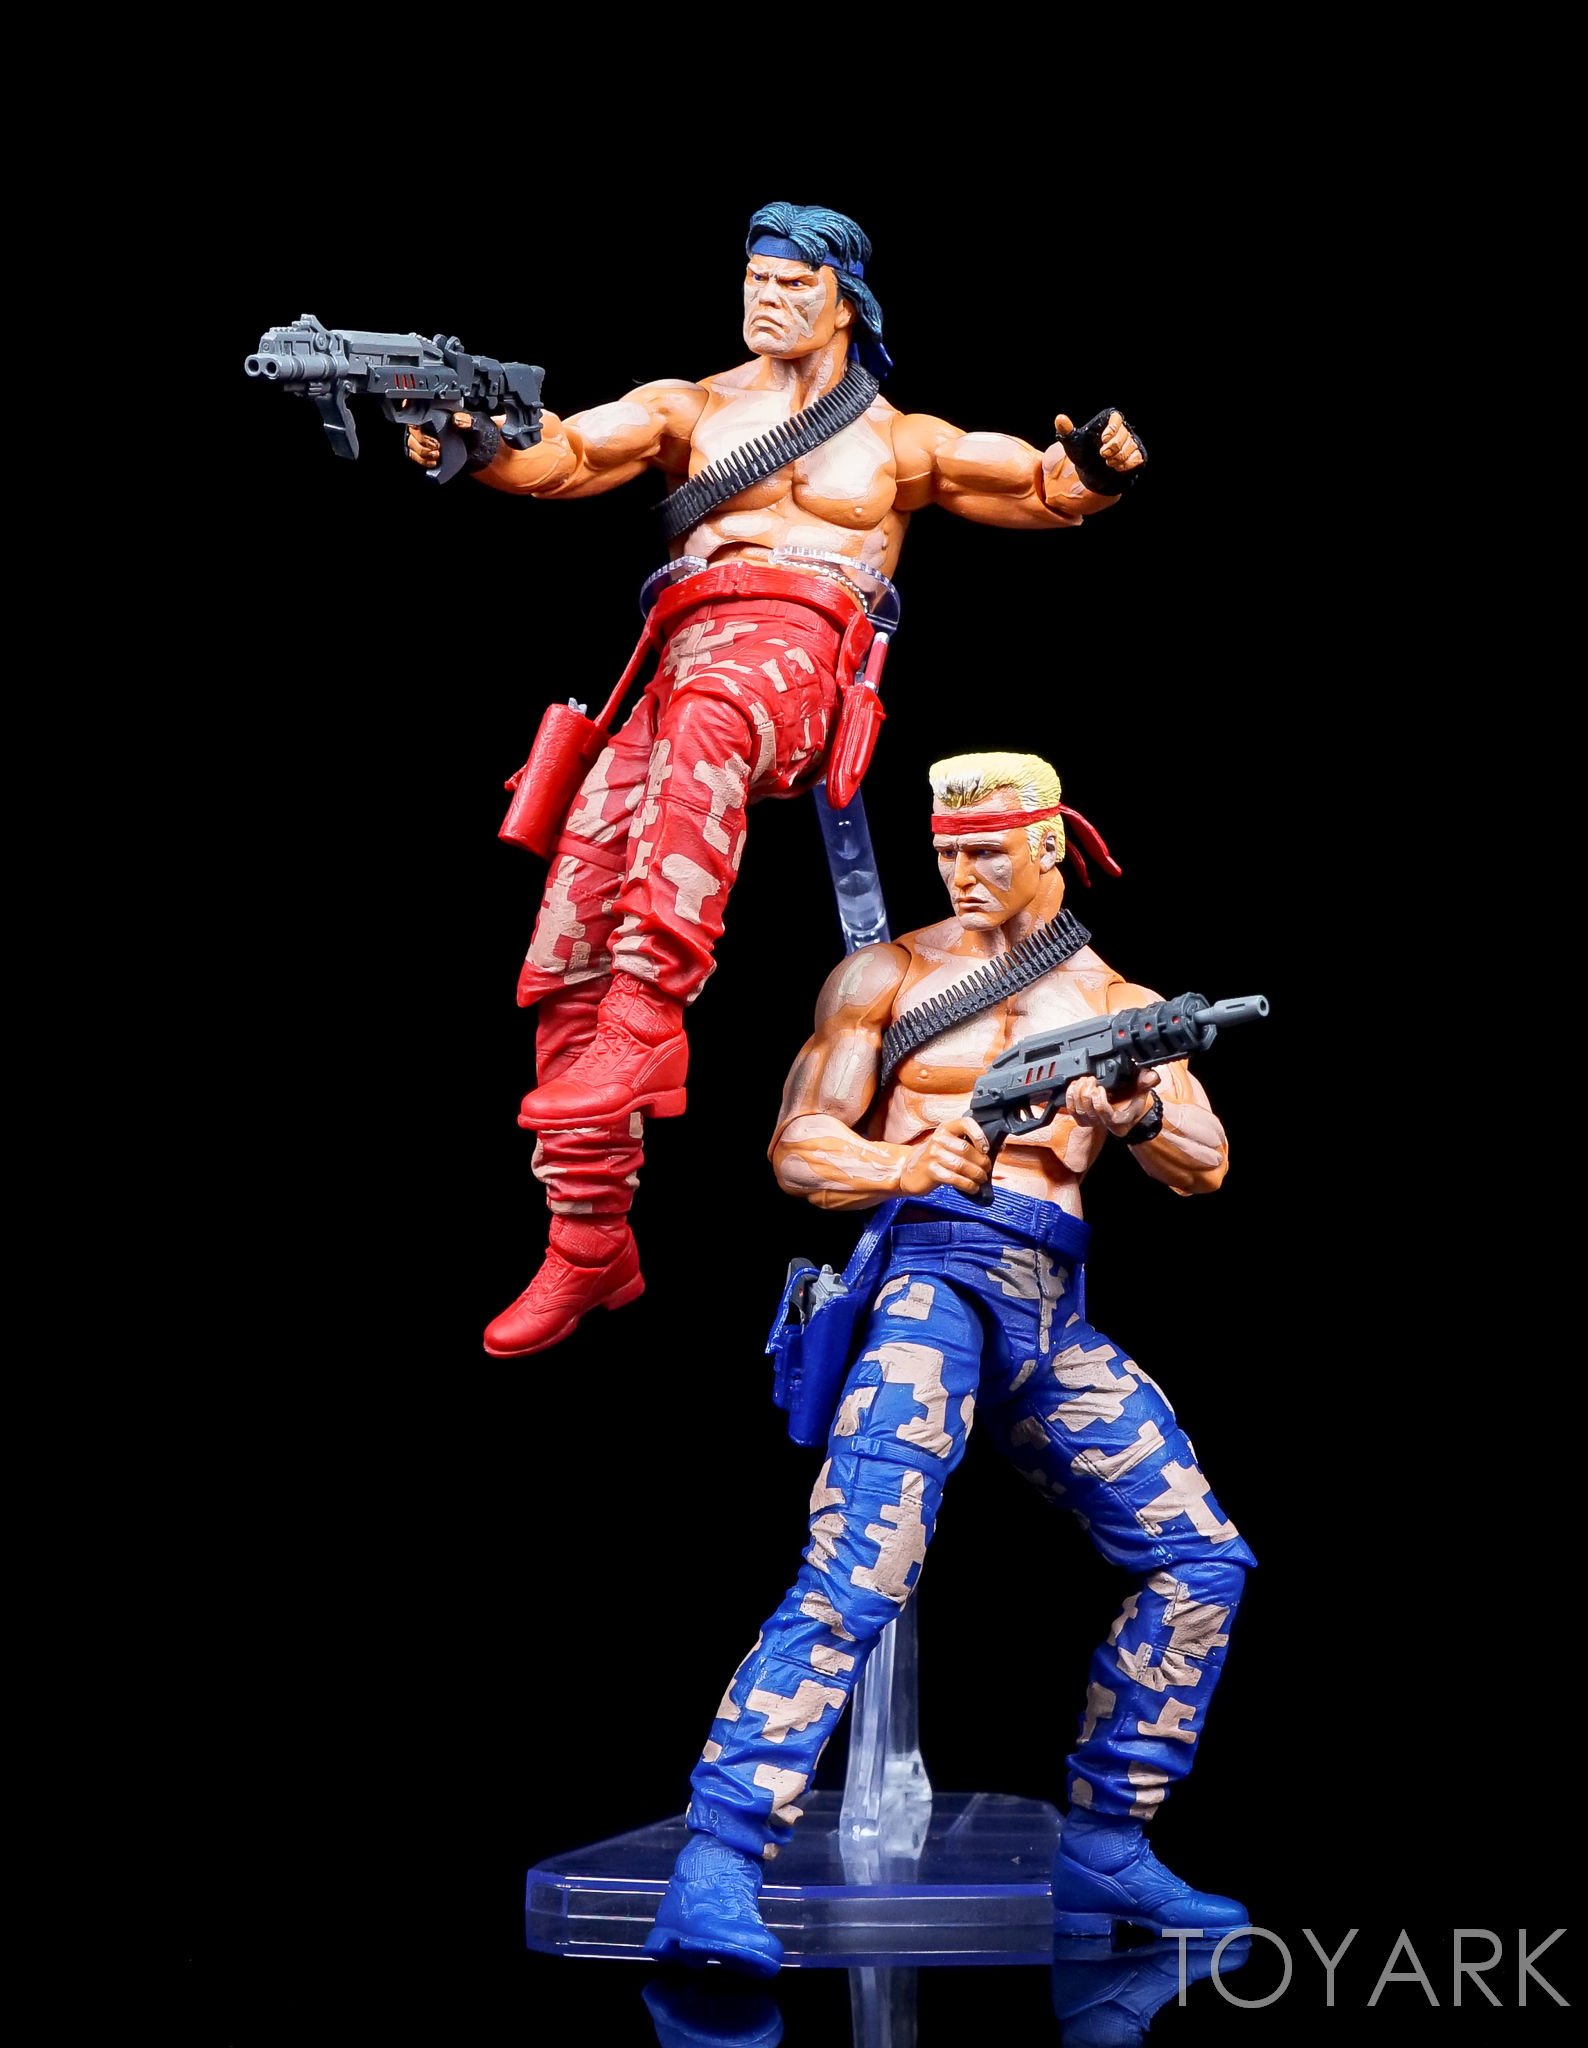 http://news.toyark.com/wp-content/uploads/sites/4/2016/09/Dynamic-Figure-Stand-NECA-022.jpg